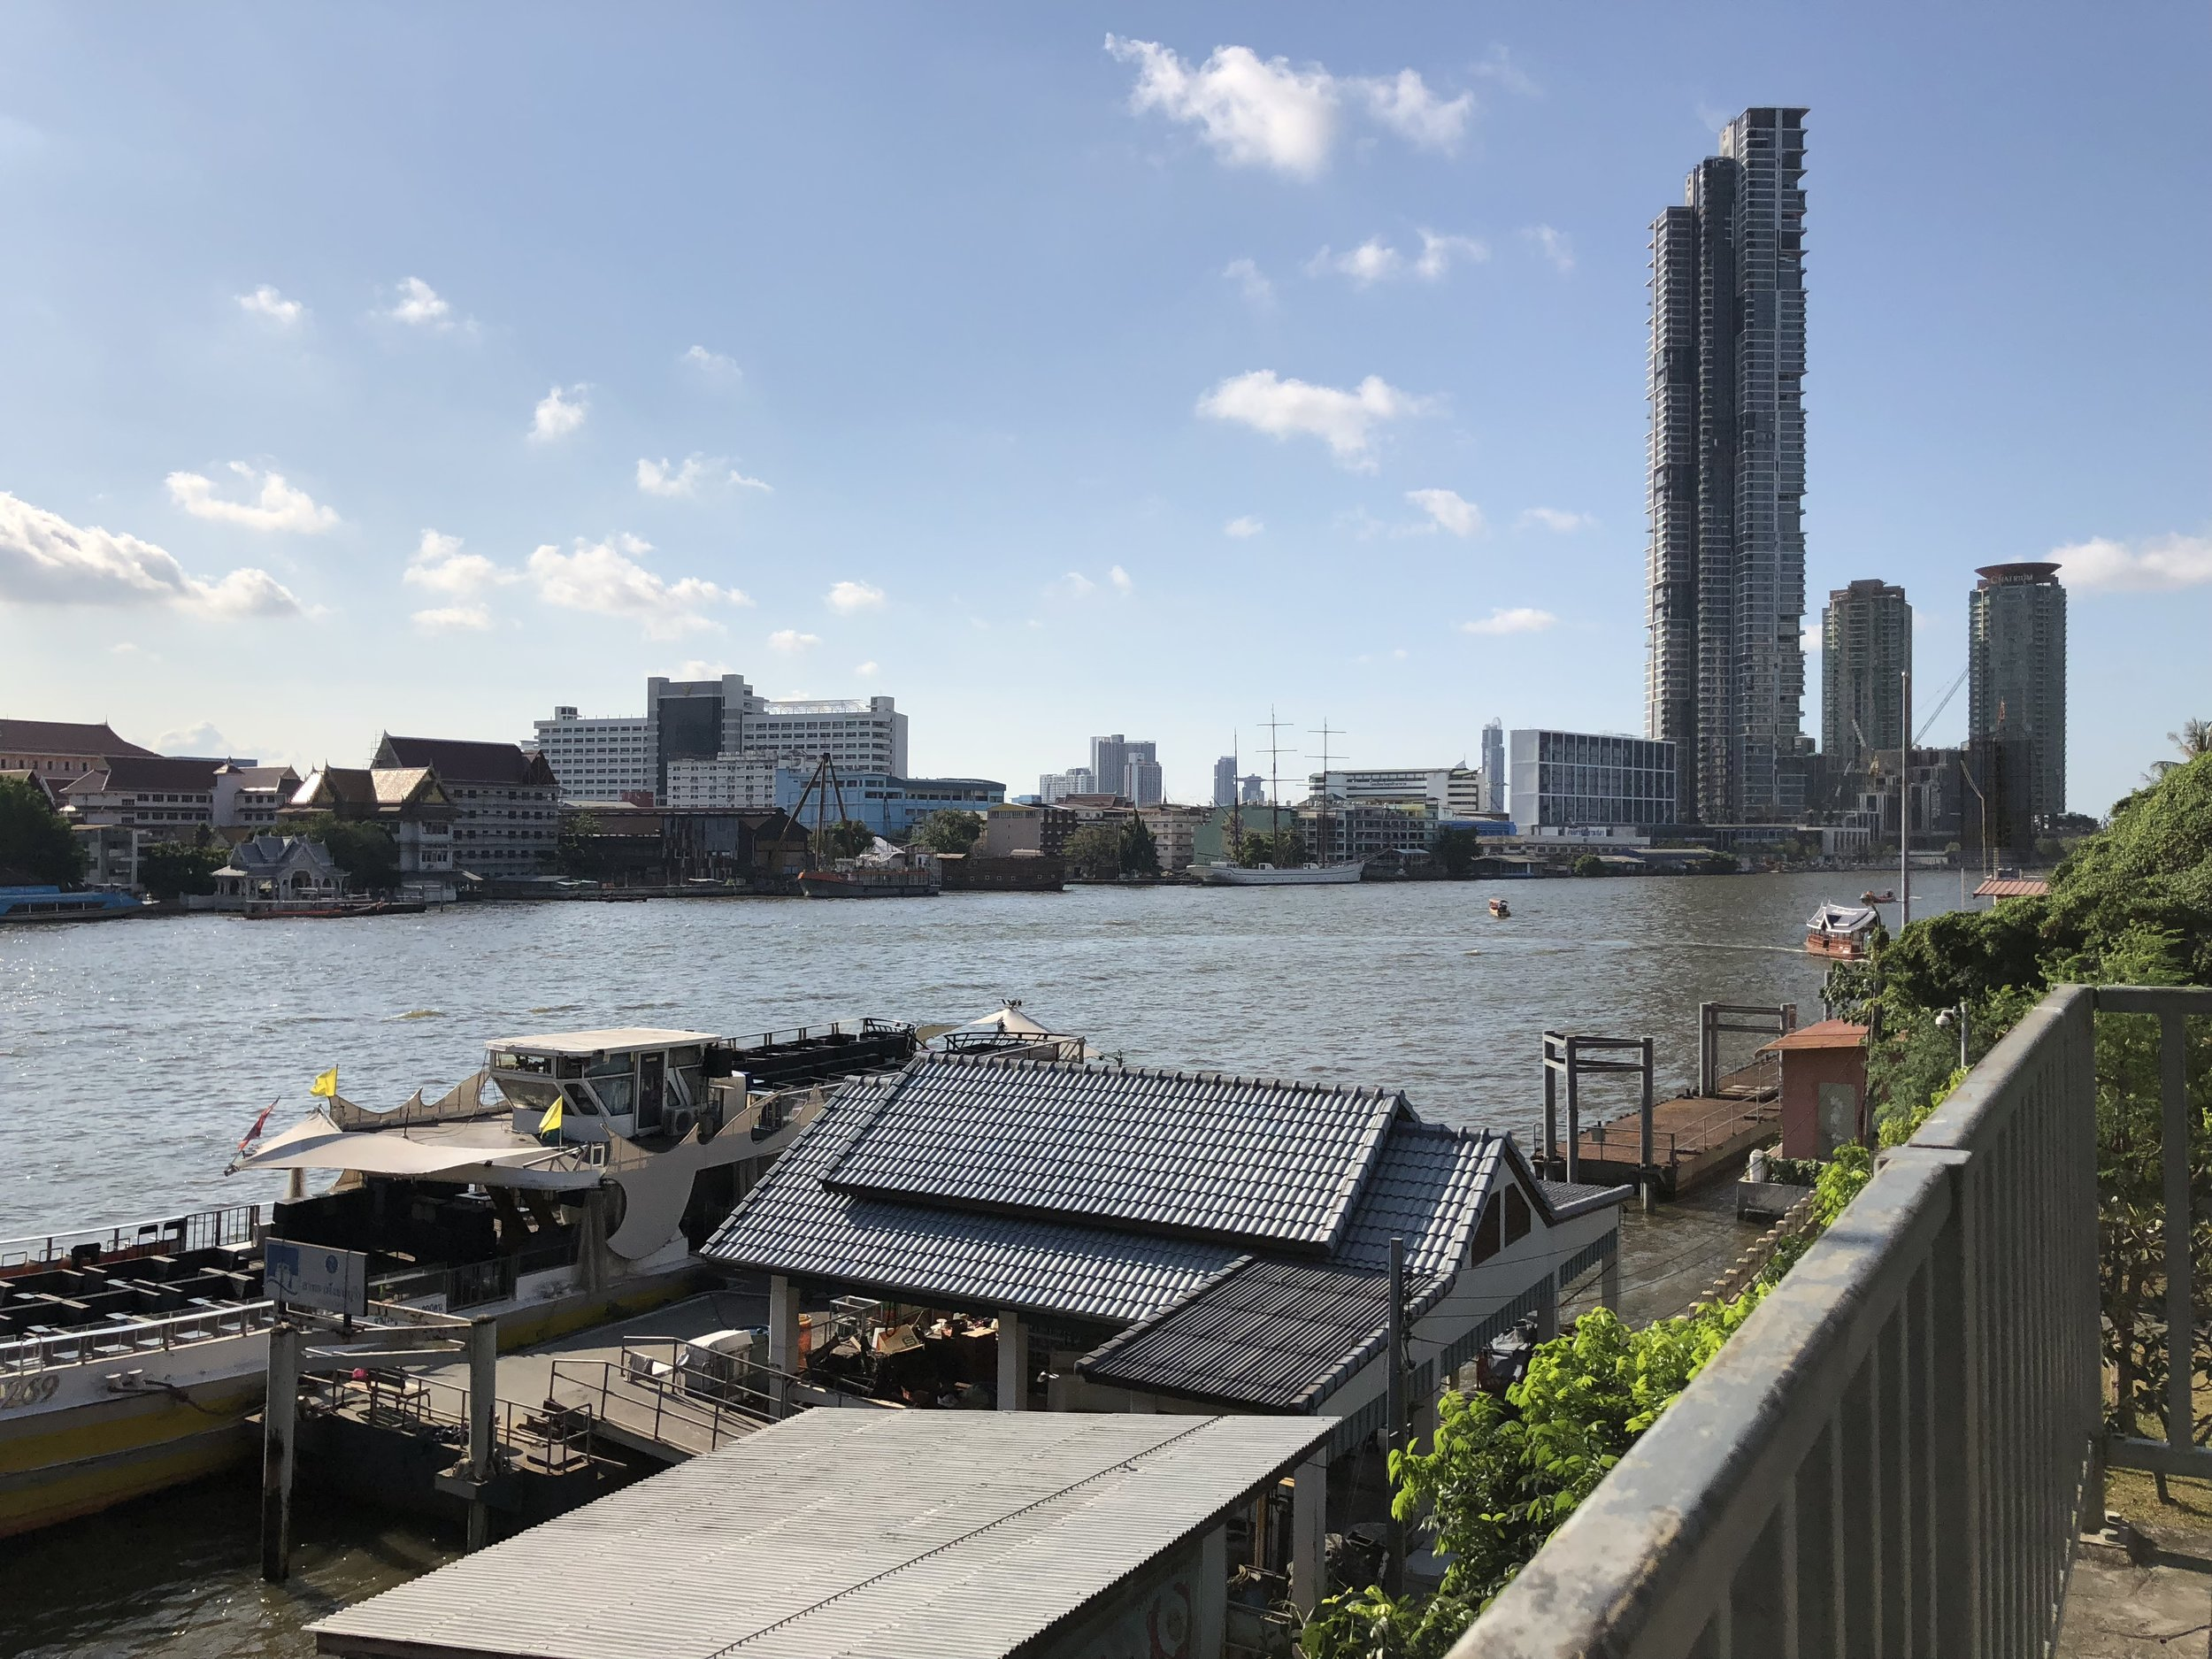 Chao Praya, the river that cuts through Bangkok and offers boat services to different temples.